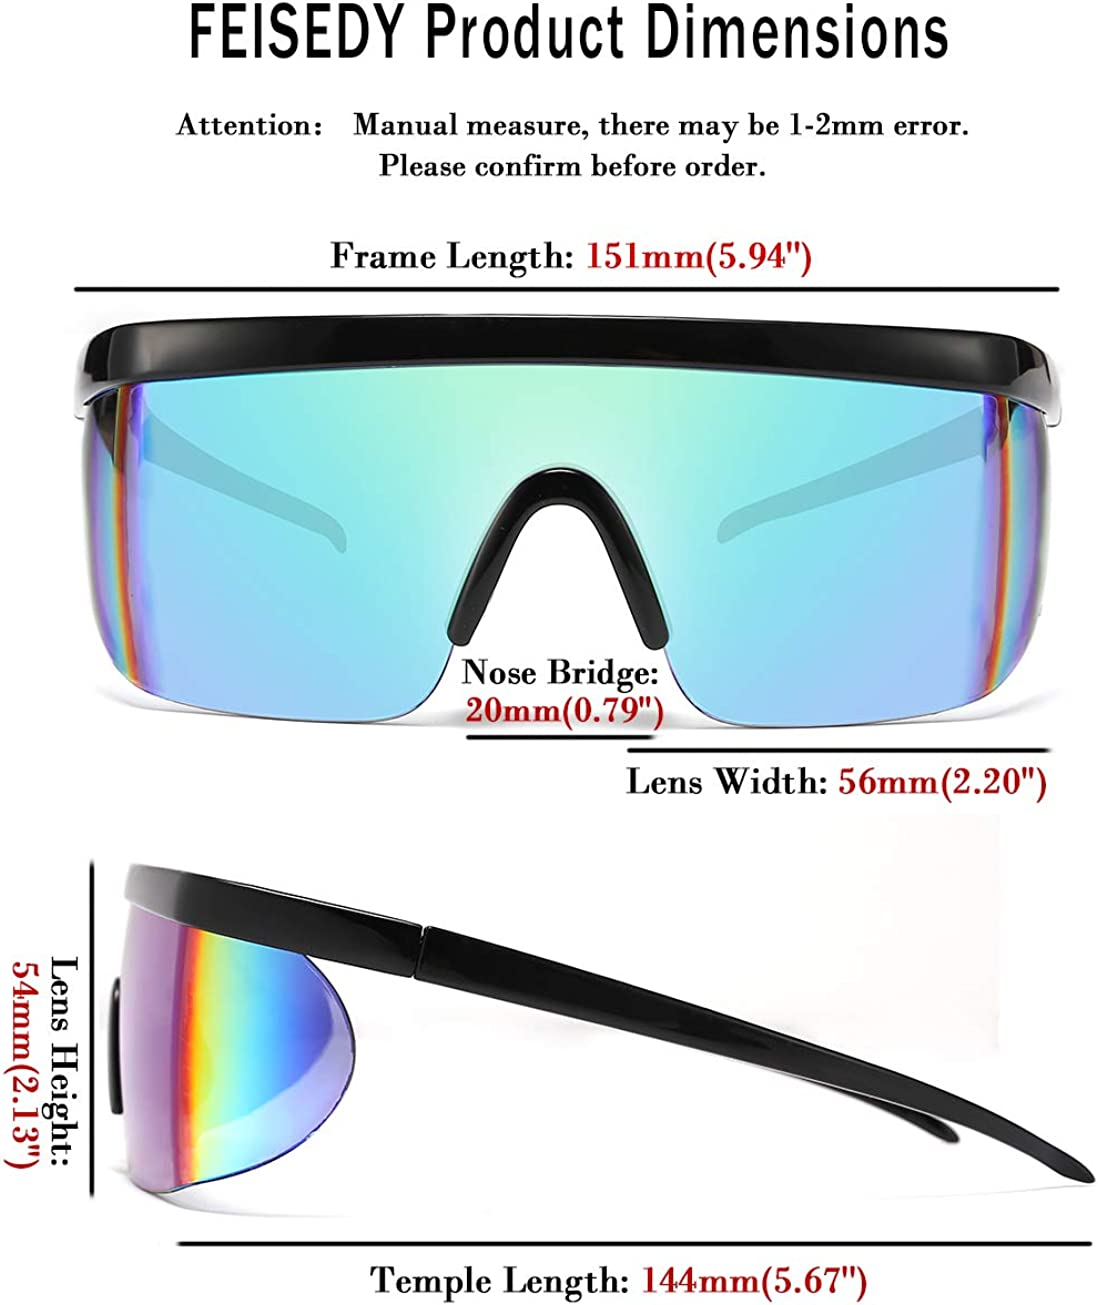 FEISEDY Classic Flat Top Shield Sunglasses Oversized Mirror One Piece Sport Glasses Men Women B2522